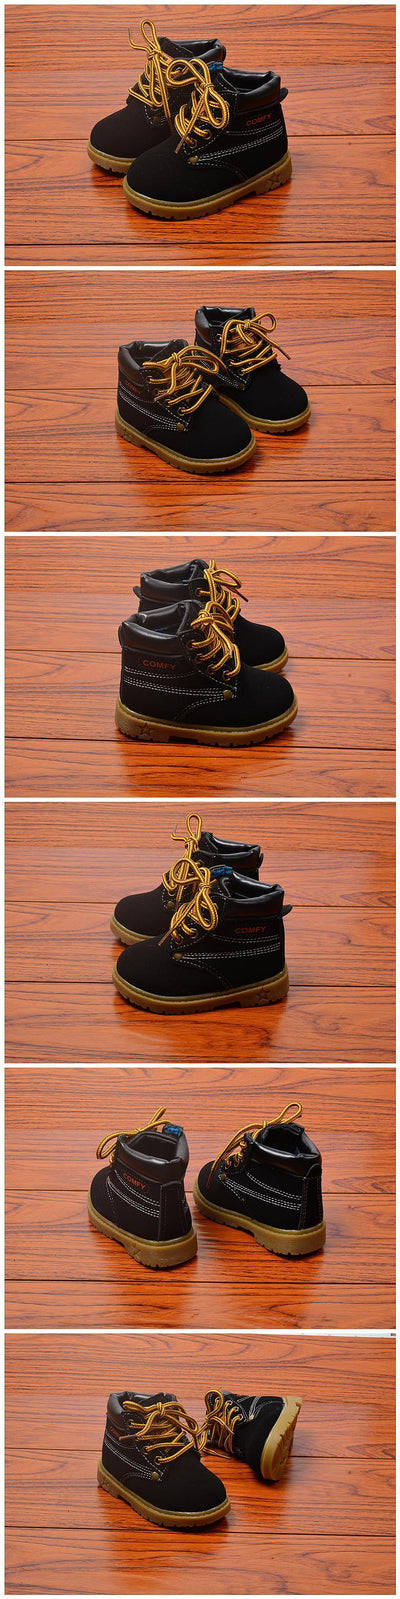 New Fashion Baby Boots Toddler - ibootskids